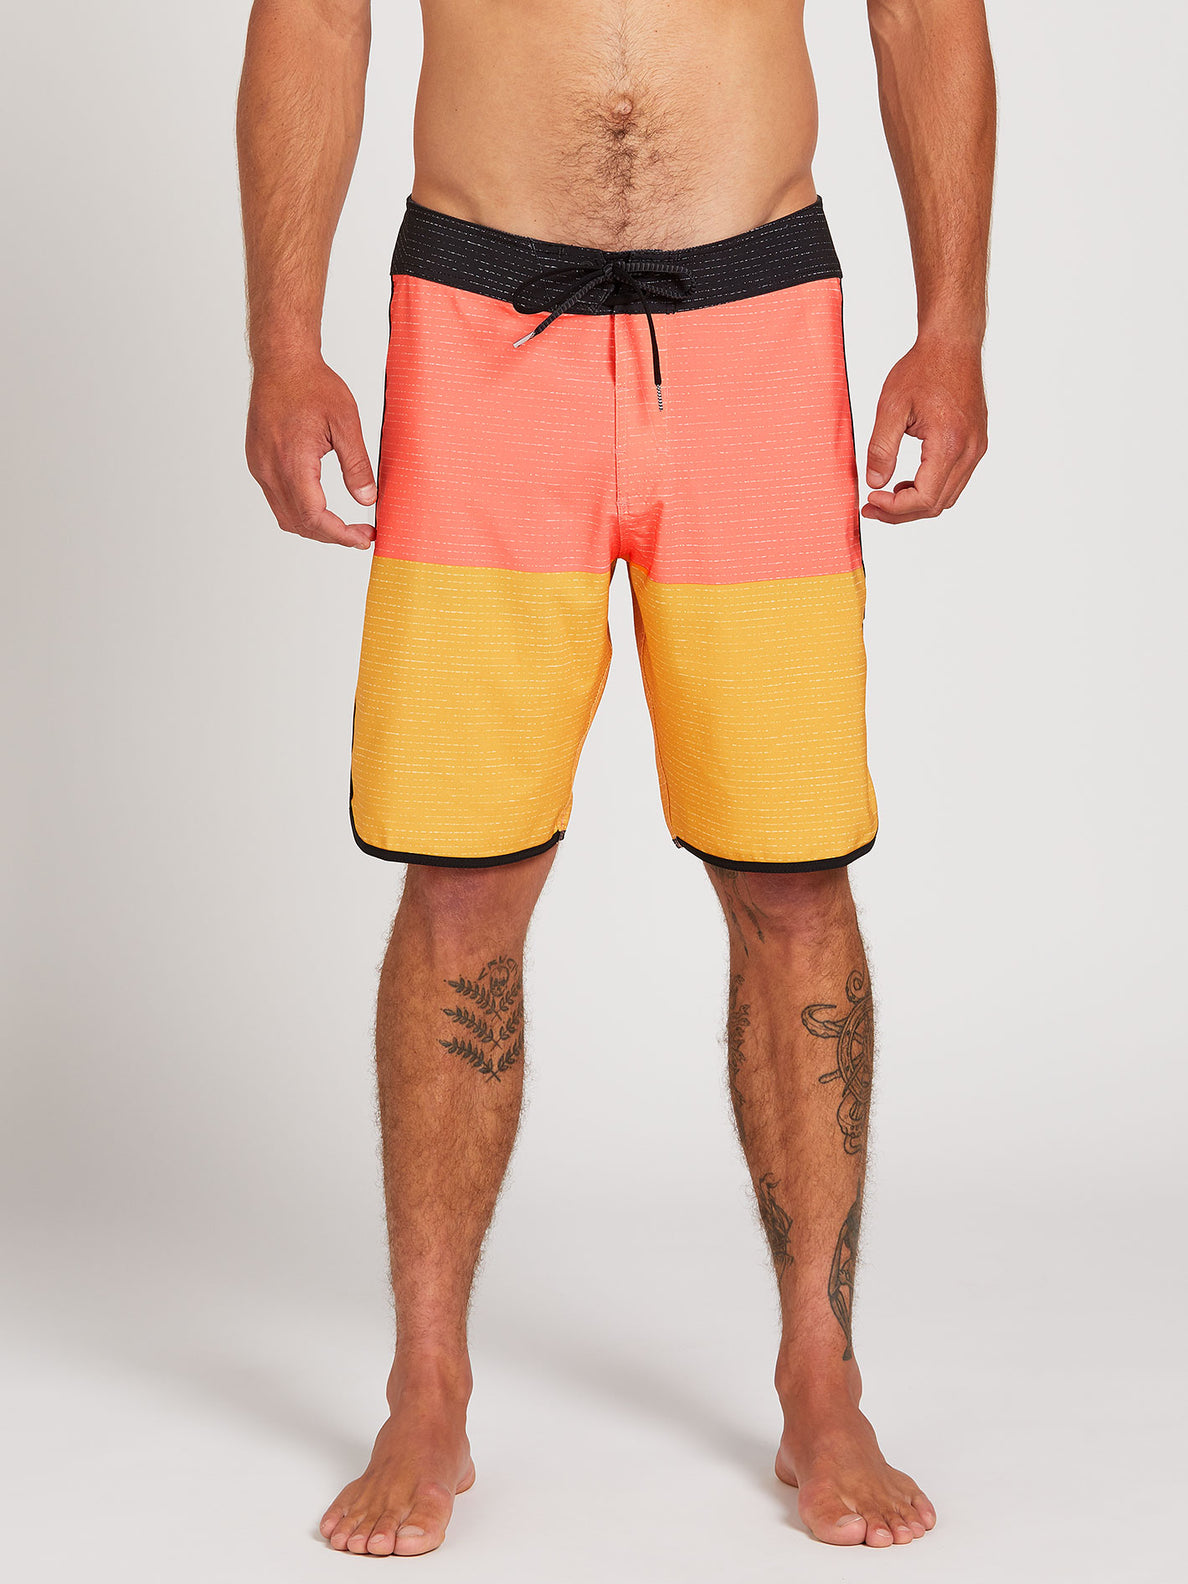 Lido Scallop Mod-Tech Trunks - Mineral Yellow (A0822015_MYL) [1]